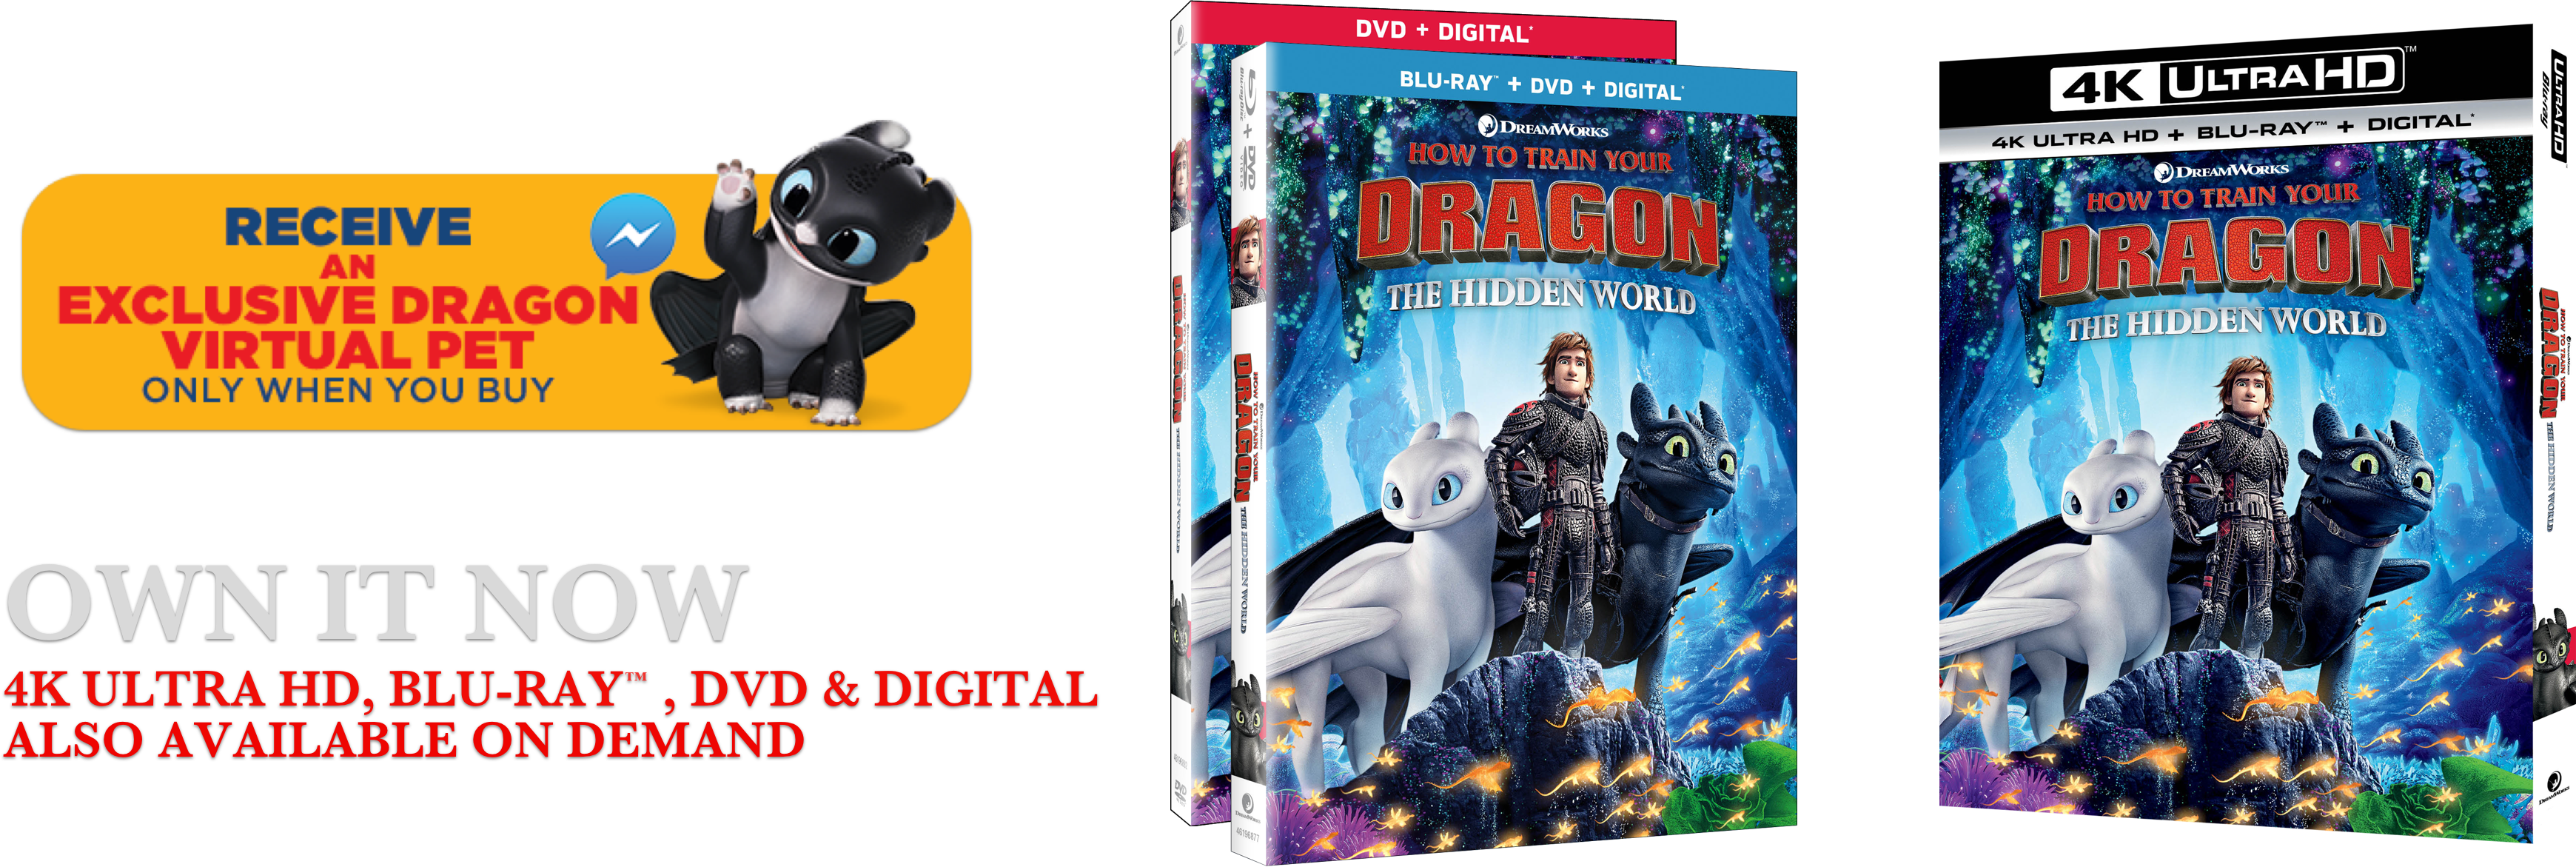 How to train your dragon the hidden world movie site 3 1 2019 how to train your dragon the hidden world ccuart Choice Image